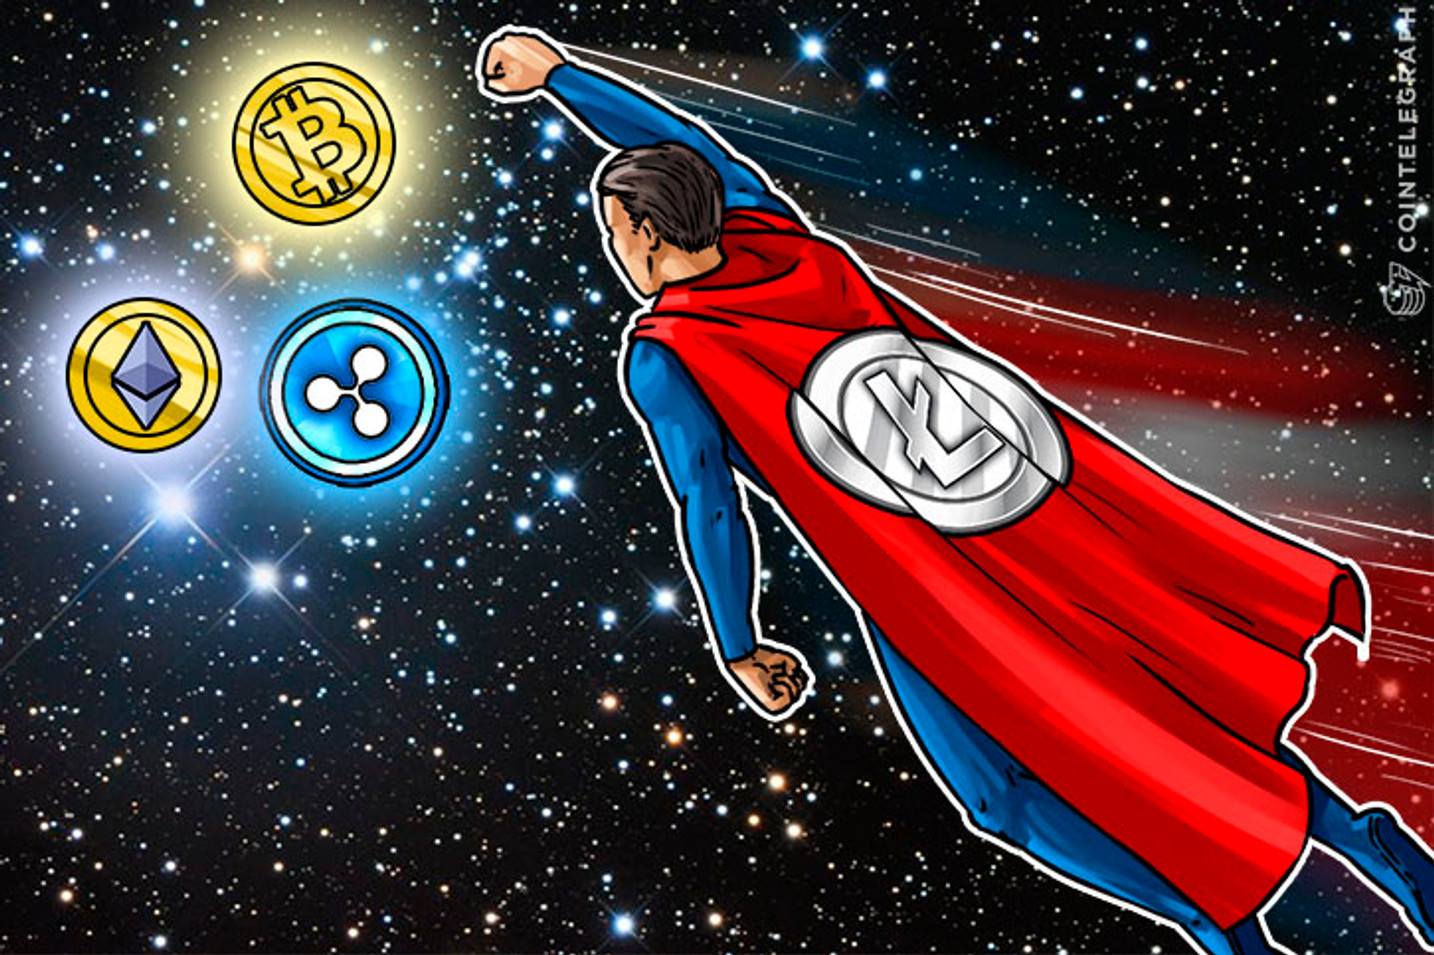 Litecoin, Silver to Bitcoin's Gold, Now Aims at $50 Goal